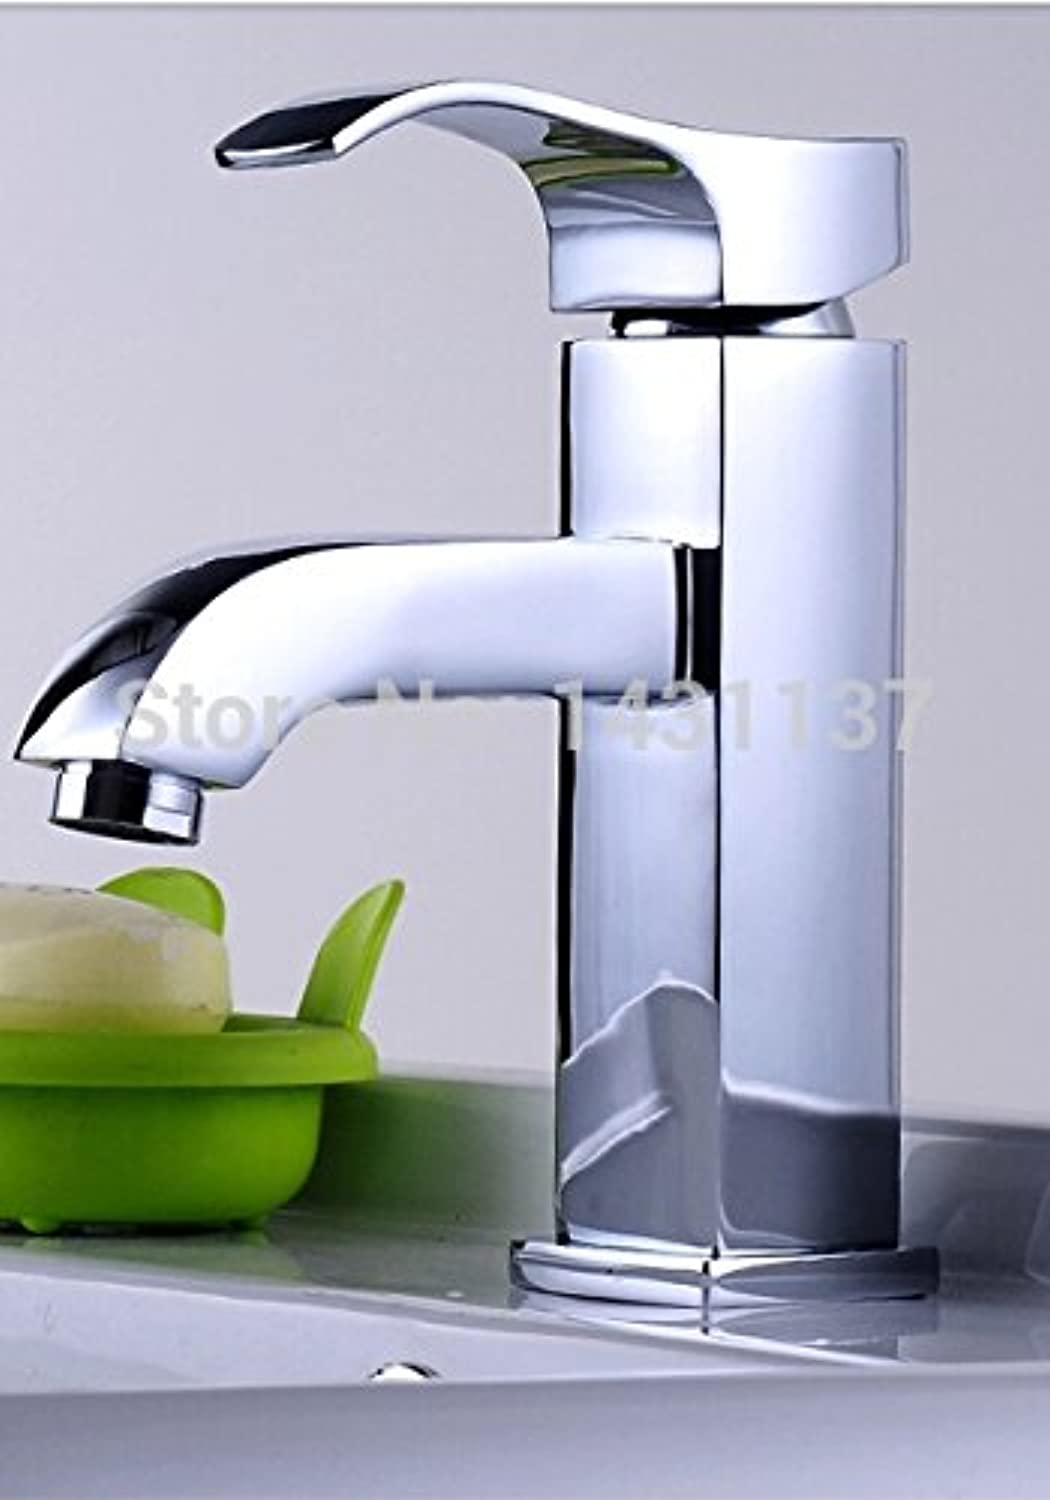 U-Enjoy Brass Material Single Top Quality Lever Cold and Hot Home Bathroom Kitchen Bathroom Faucet Sink Mixer (Free Shipping)